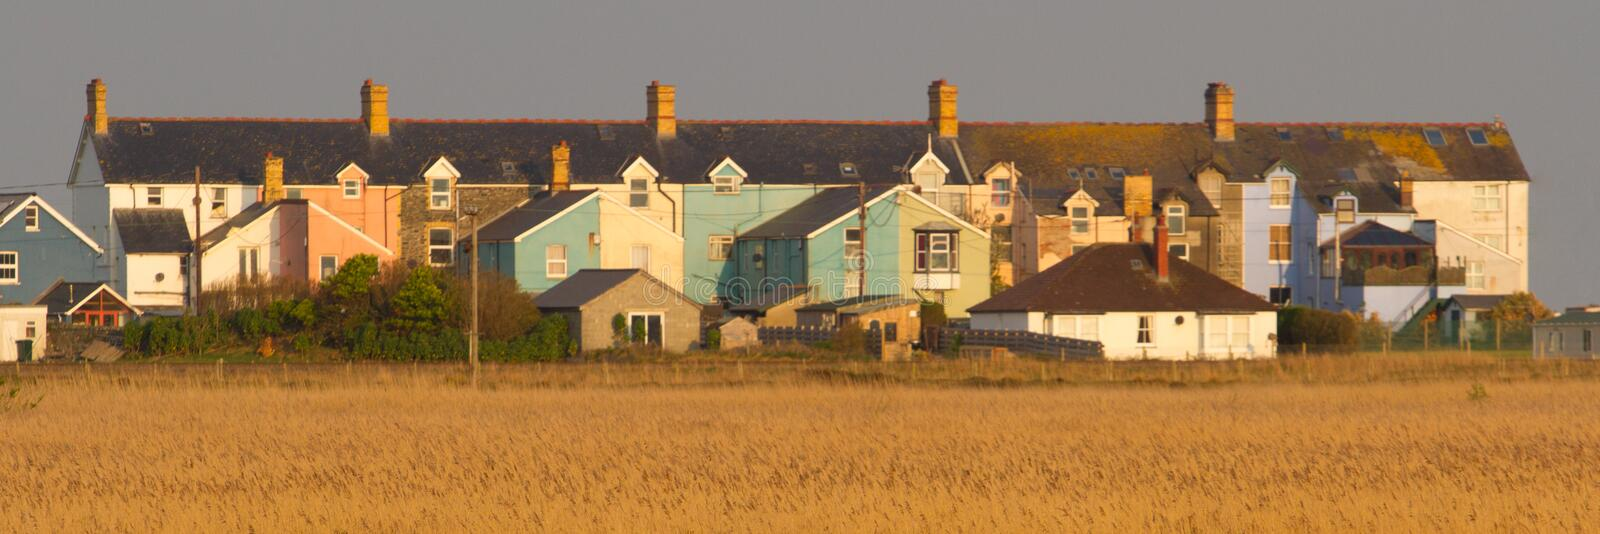 Borth houses with reed beds royalty free stock photos